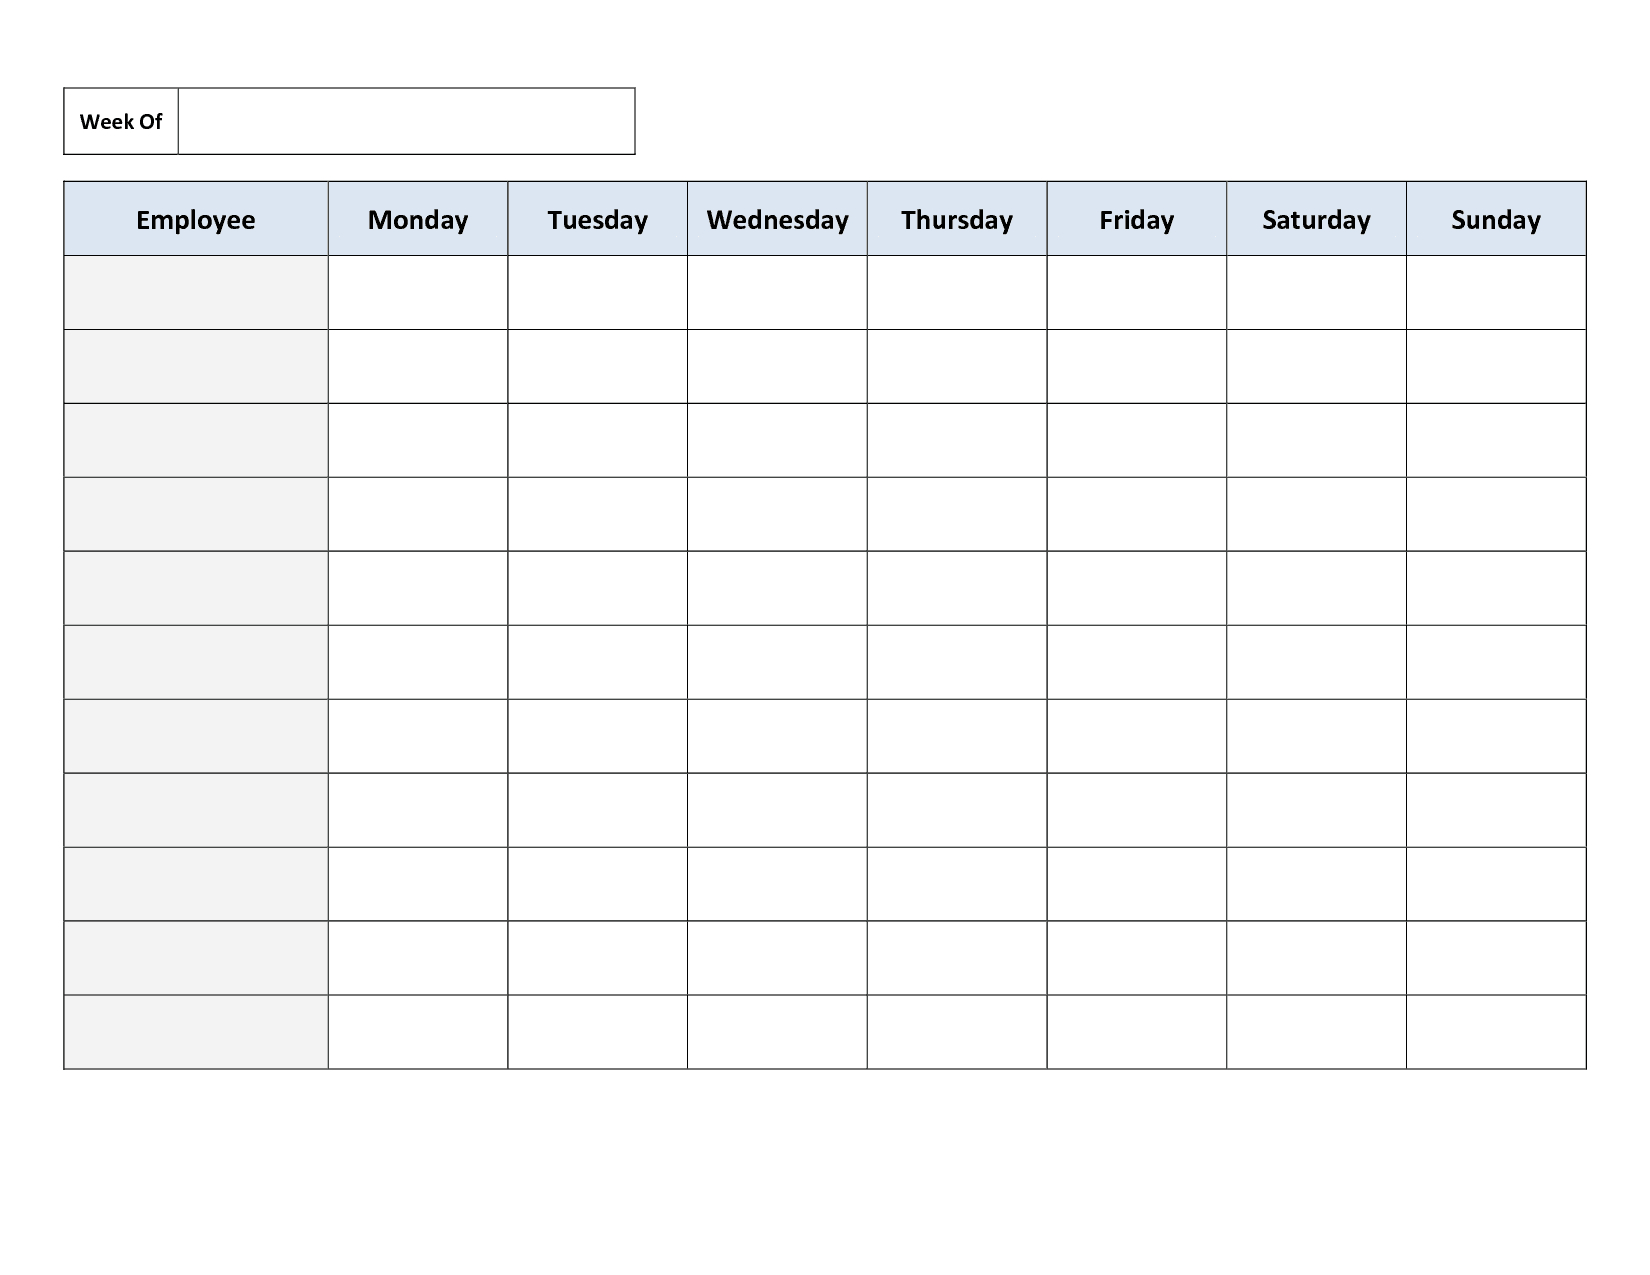 Daily Call Report Format For Medical Representative And Free With Sales Rep Call Report Template